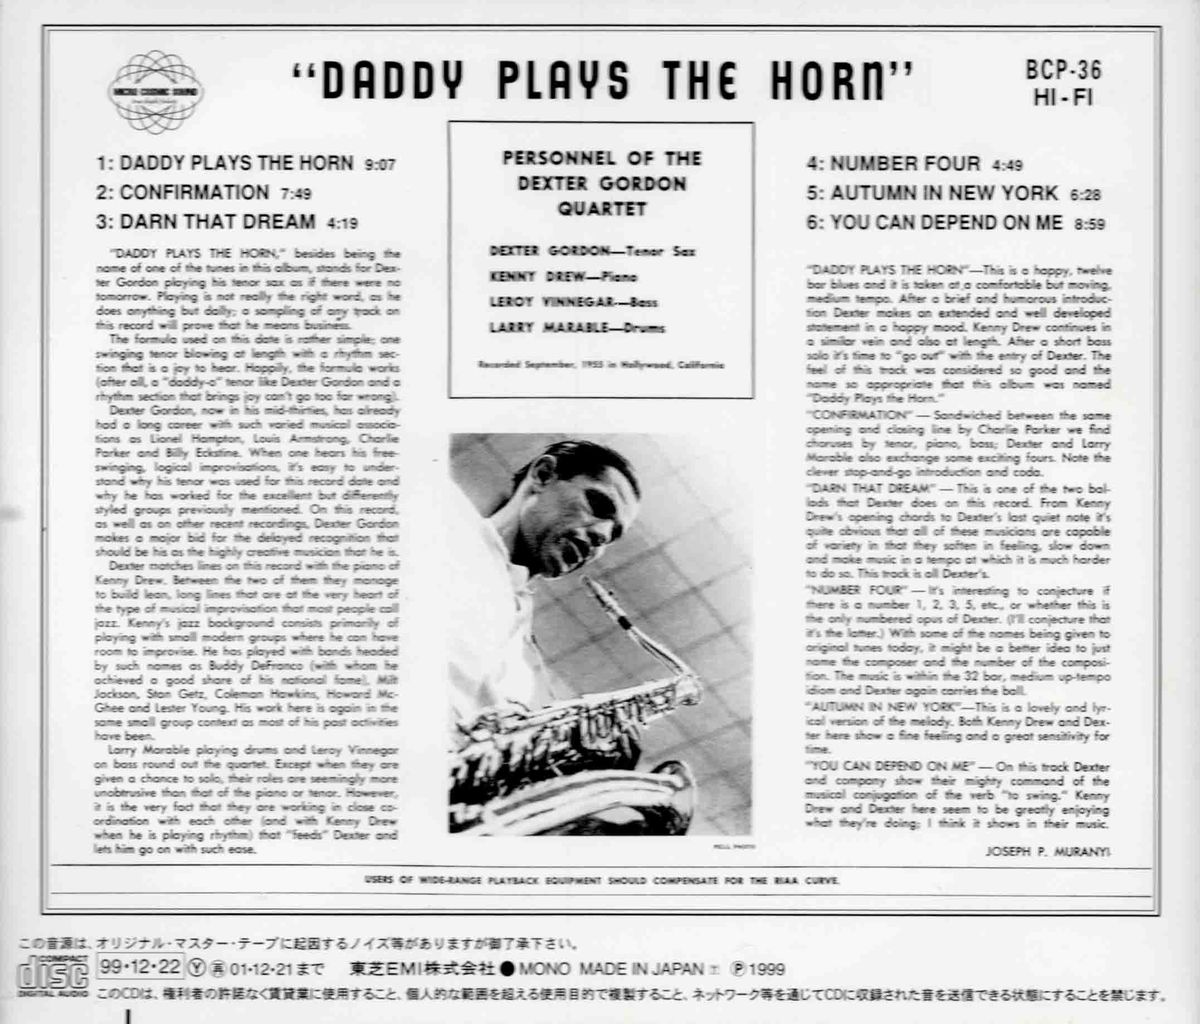 DADDY PLAYS THE HORN-2